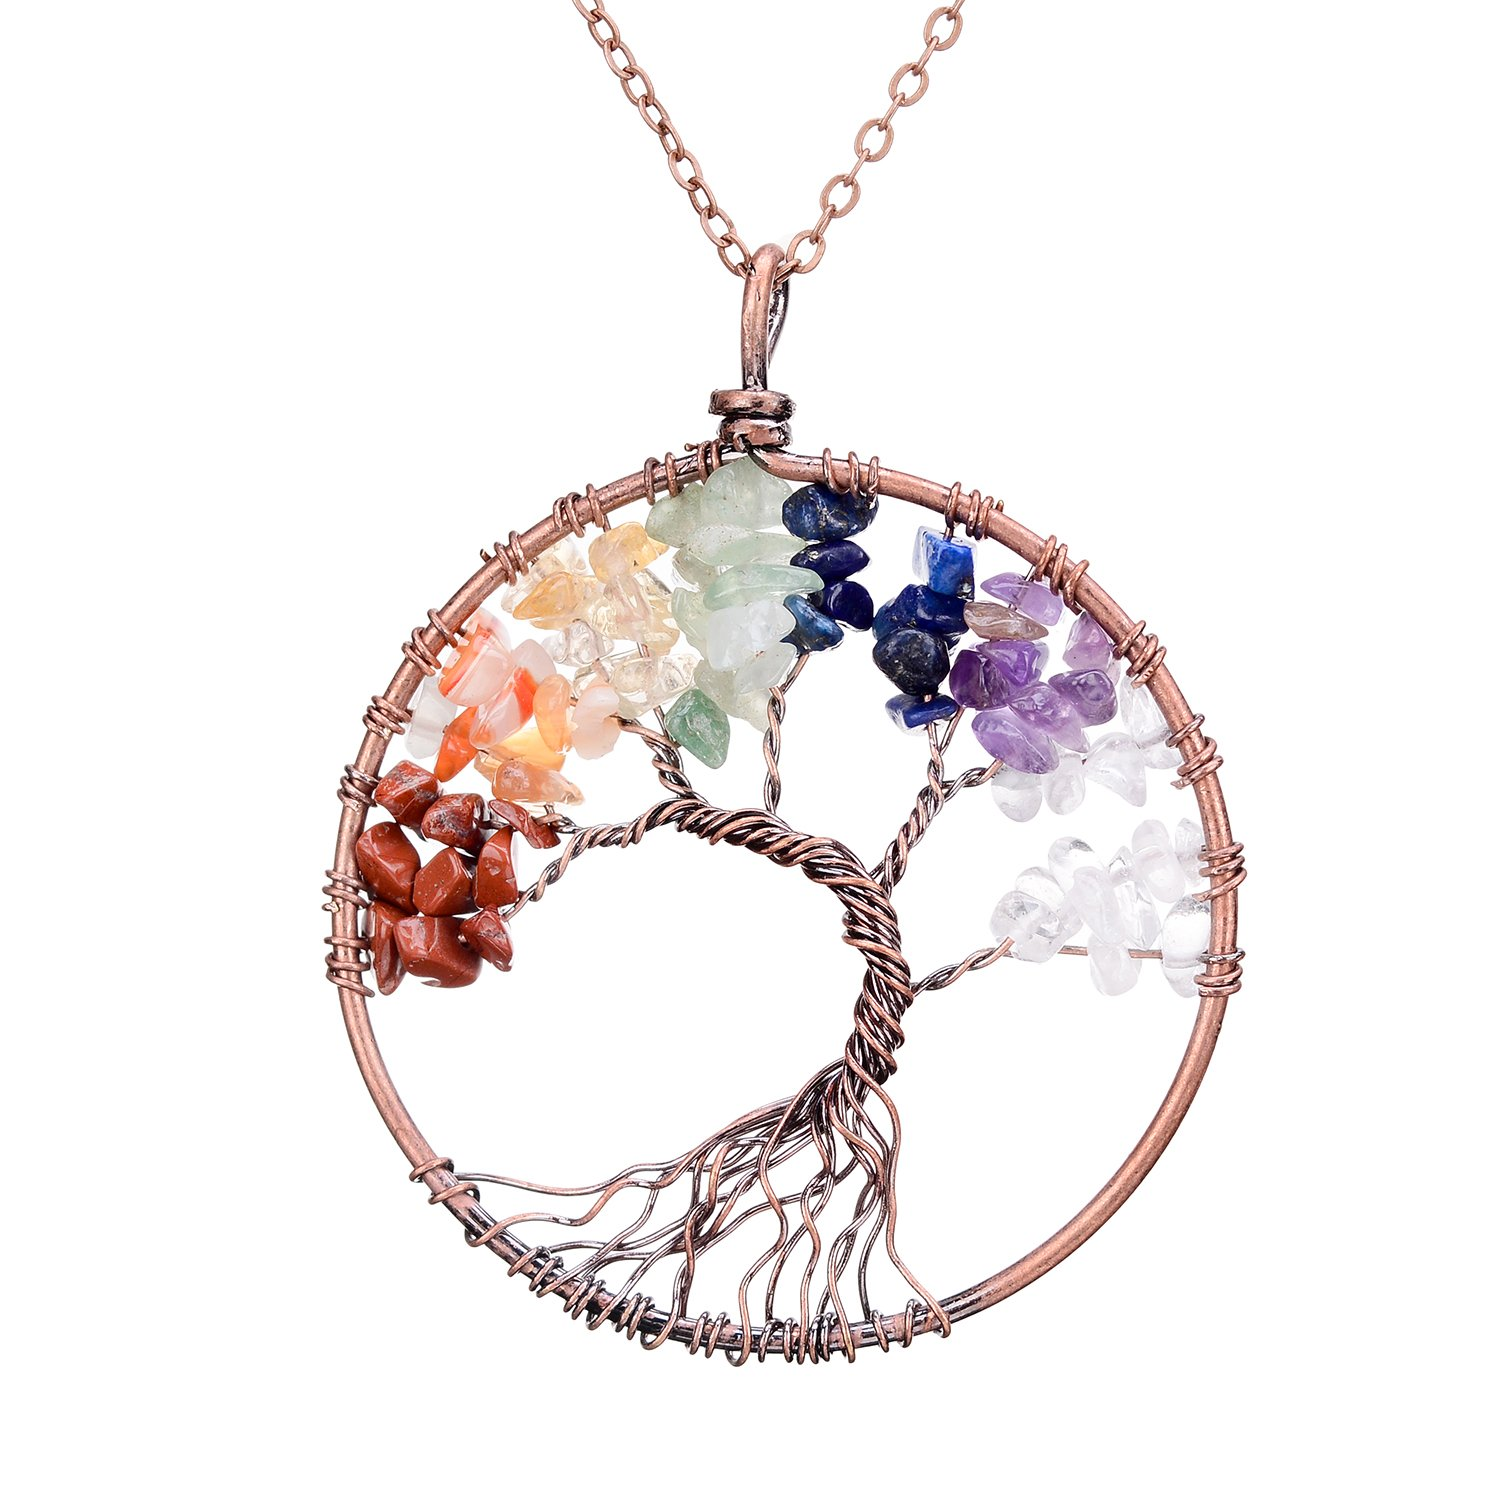 sedmart Four Seasons Tree of Life Pendant Wire Wrapped Wisdom Ancient Copper Necklace Gemstone Chakra Jewelry by sedmart